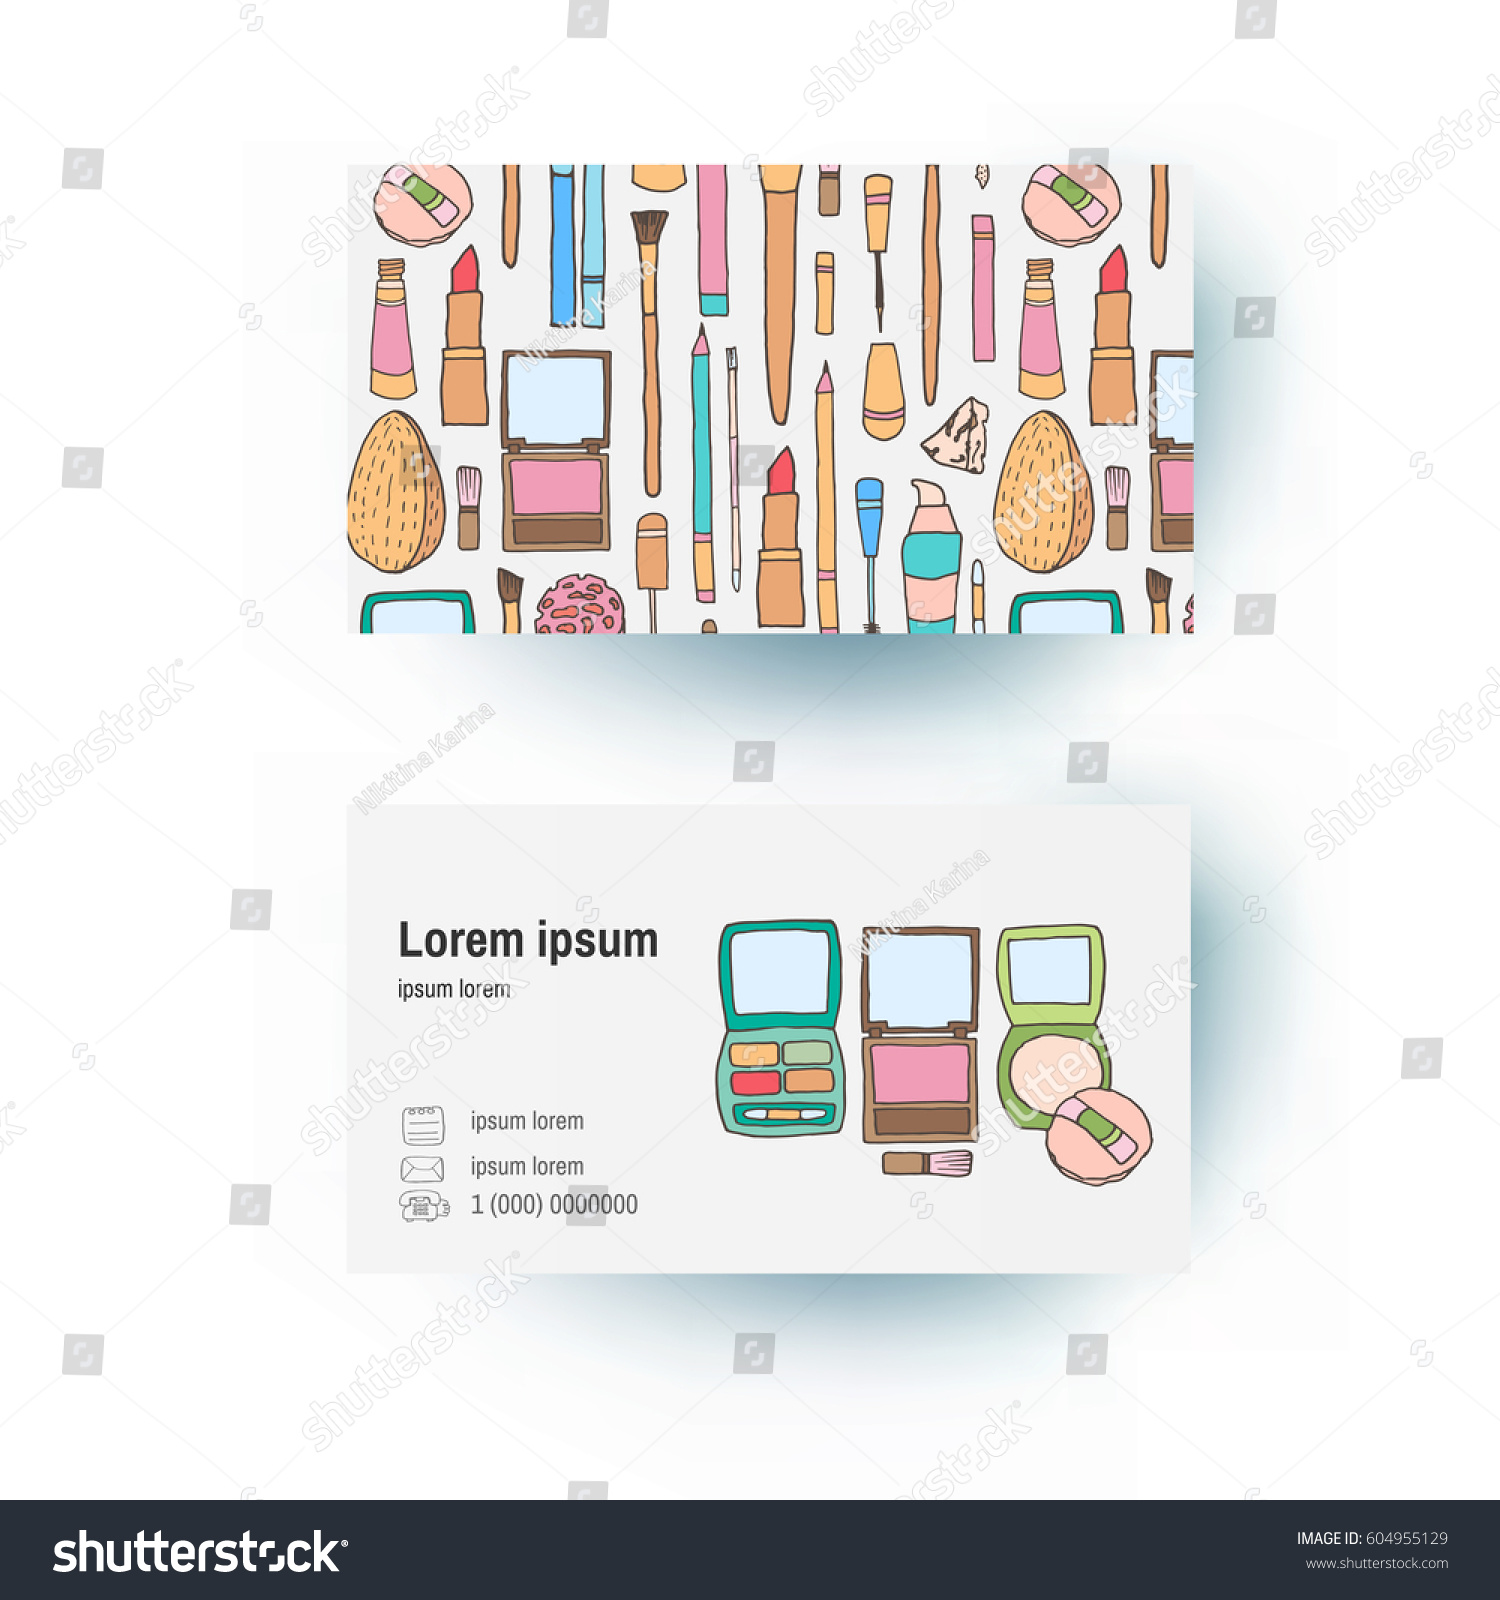 Business card doodle sketch style cosmetics stock vector royalty business card in doodle sketch style of cosmetics and bags for it sketching brushes colourmoves